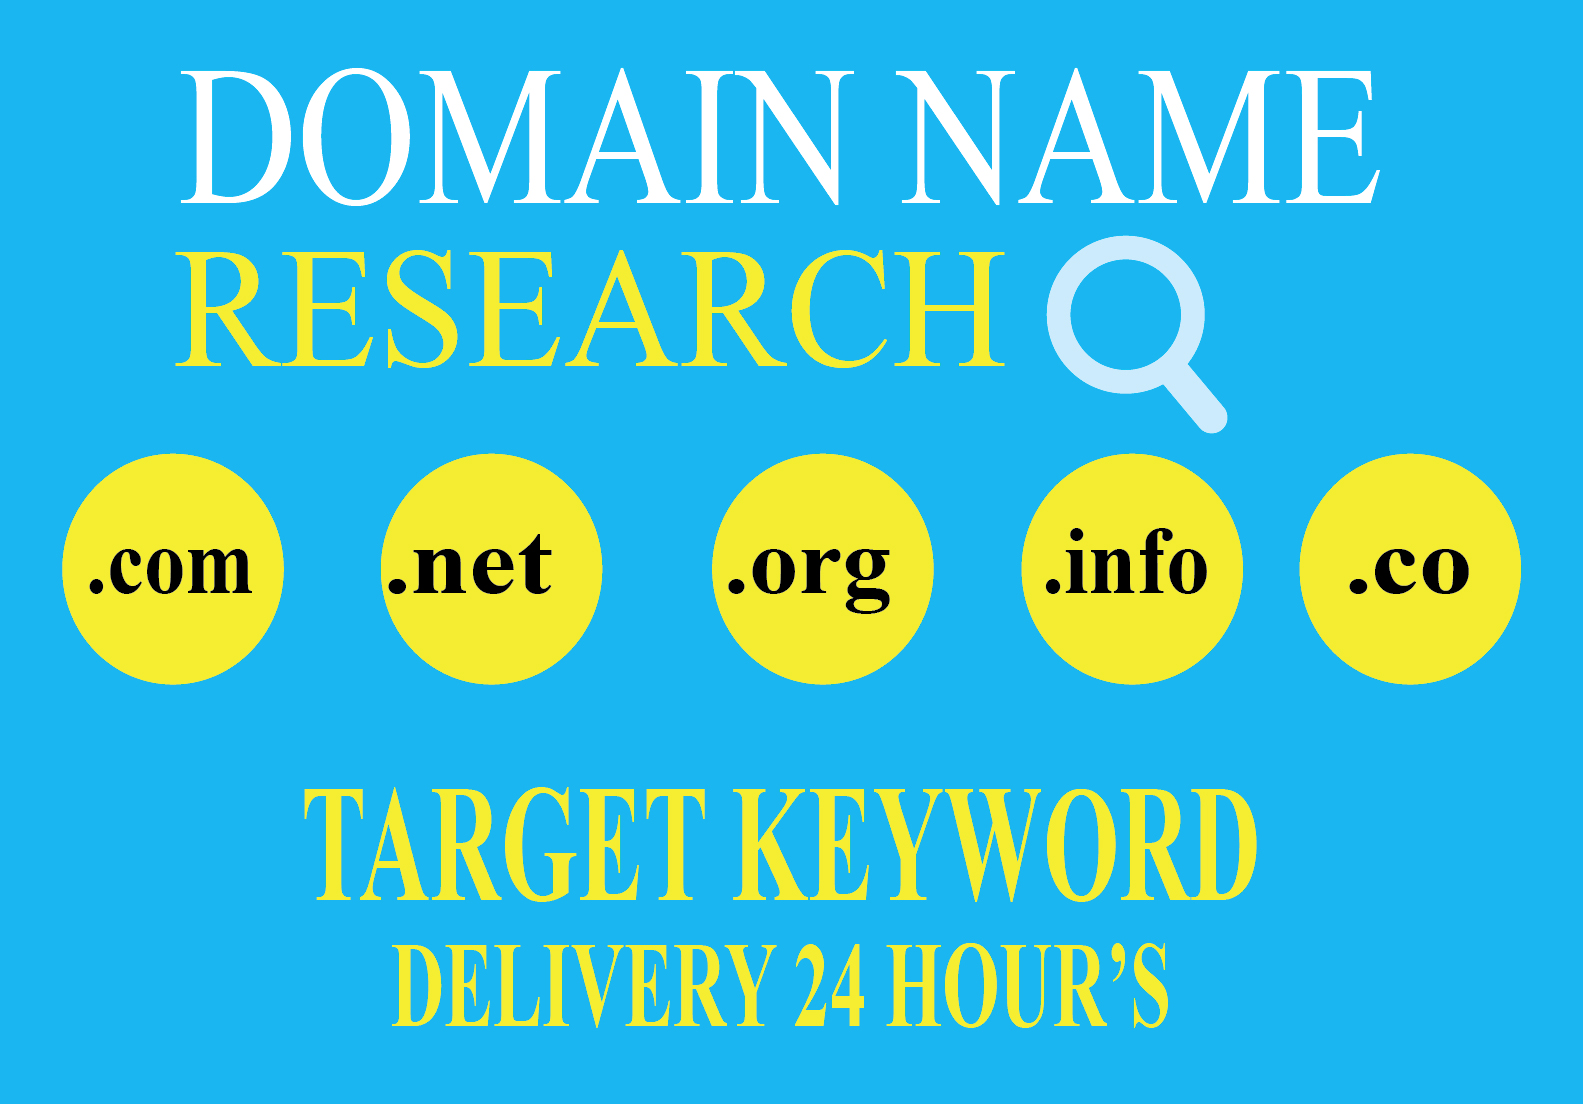 I will research and find amazing domain name ideas that fit you or your business name